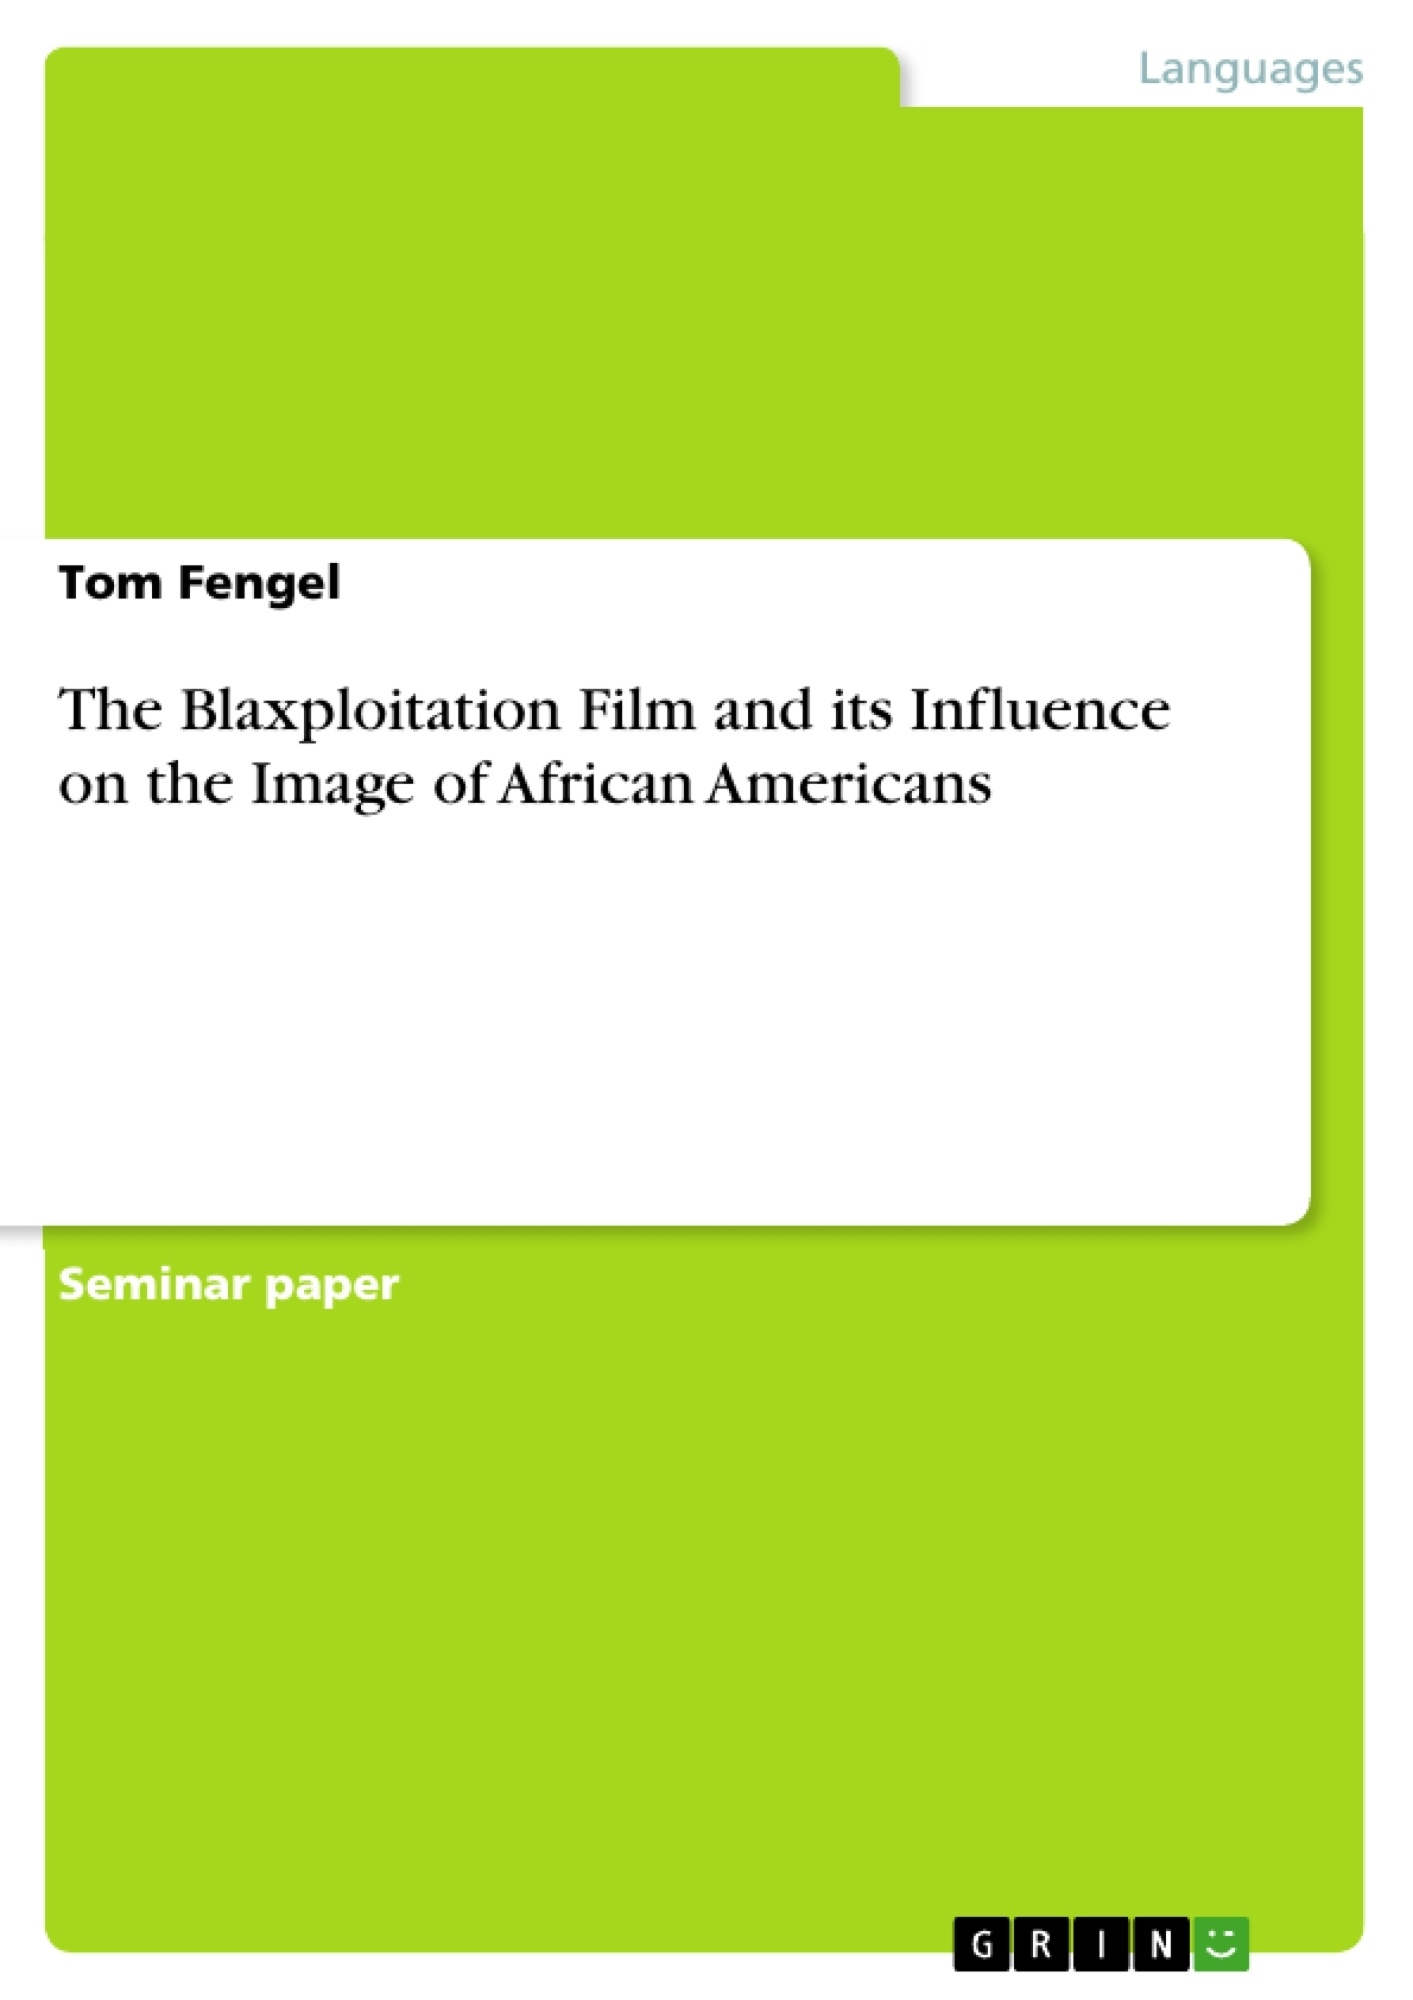 Title: The Blaxploitation Film and its Influence on the Image of African Americans